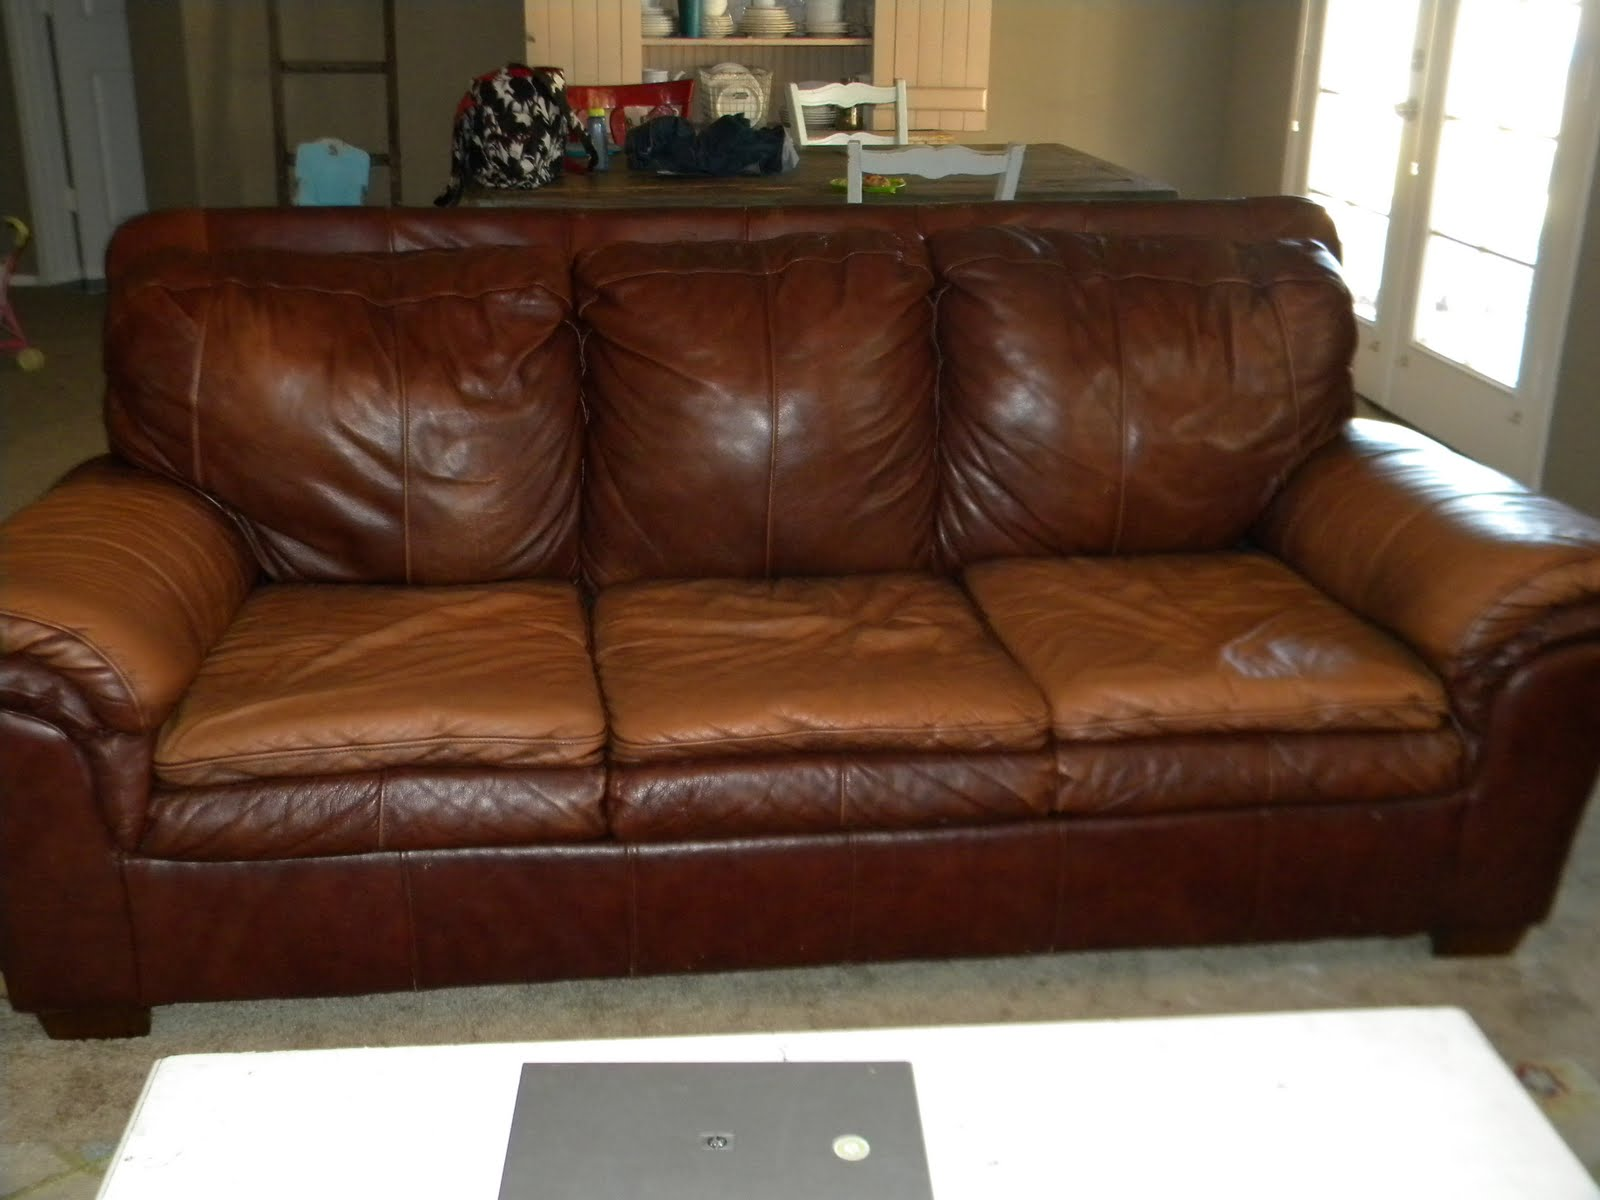 Grand design leather couch and chair for Leather furniture